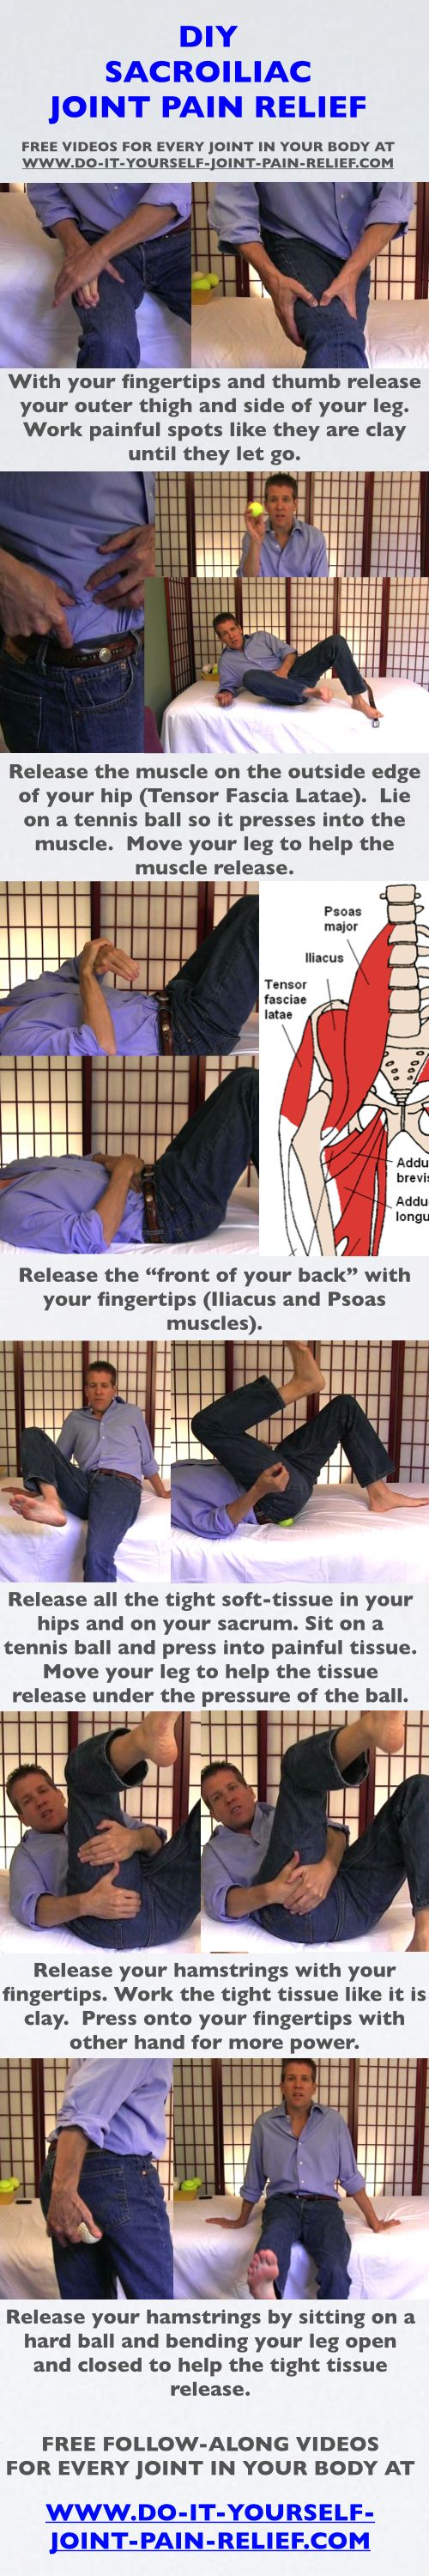 "DIY Sacroiliac Joint Pain Relief - Free follow-along videos and  free pain relief ""Cheat Sheet""..."